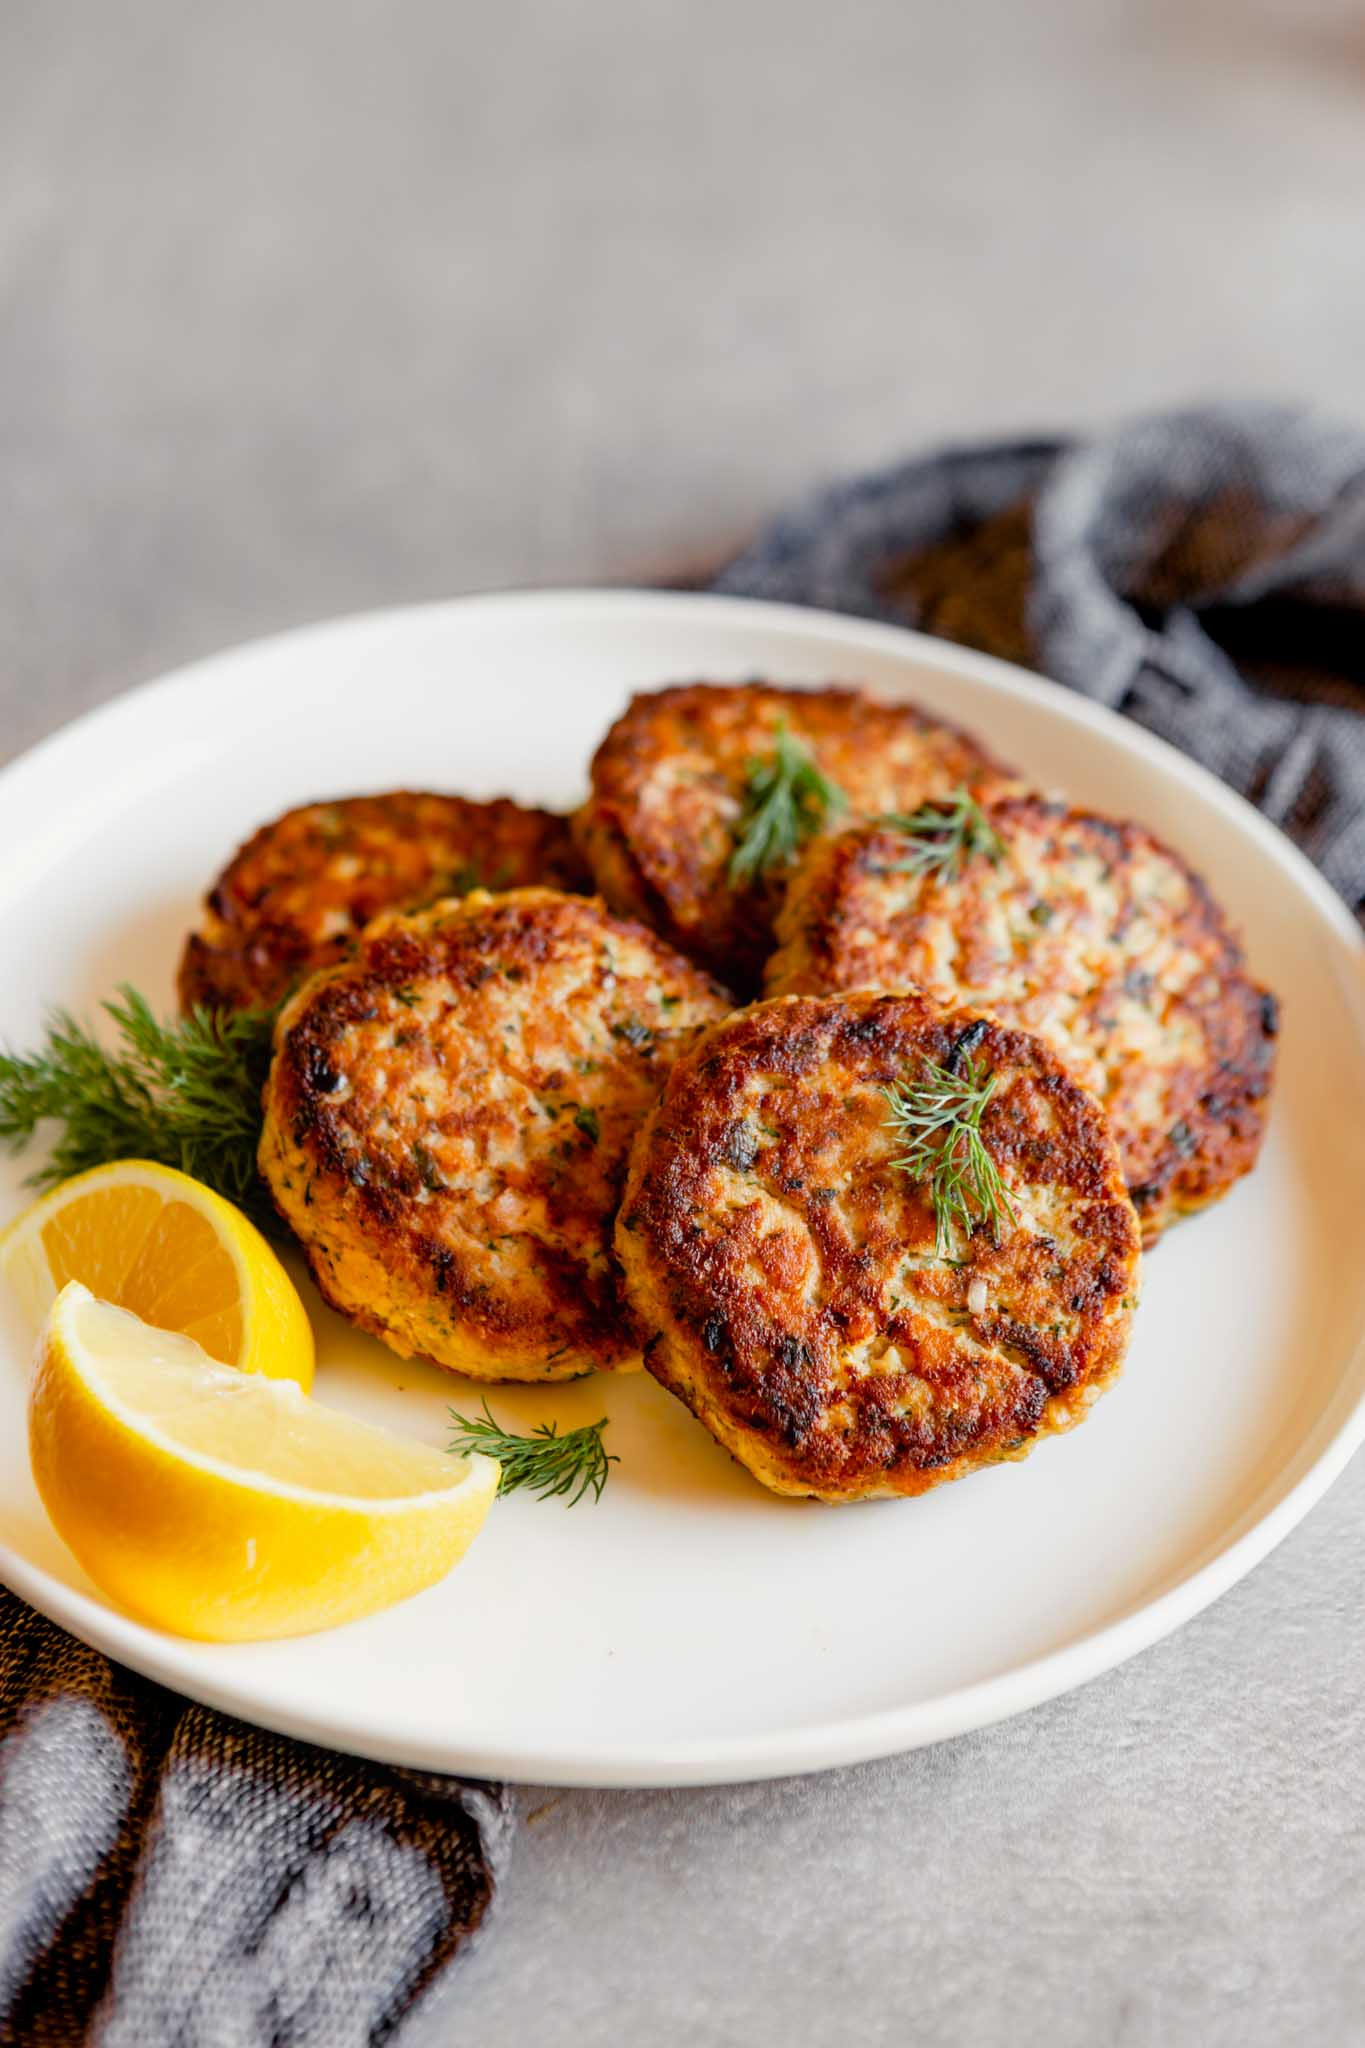 Photo of salmon cakes stacked on a white plate with lemon slices on a gray table with a blue napkin.